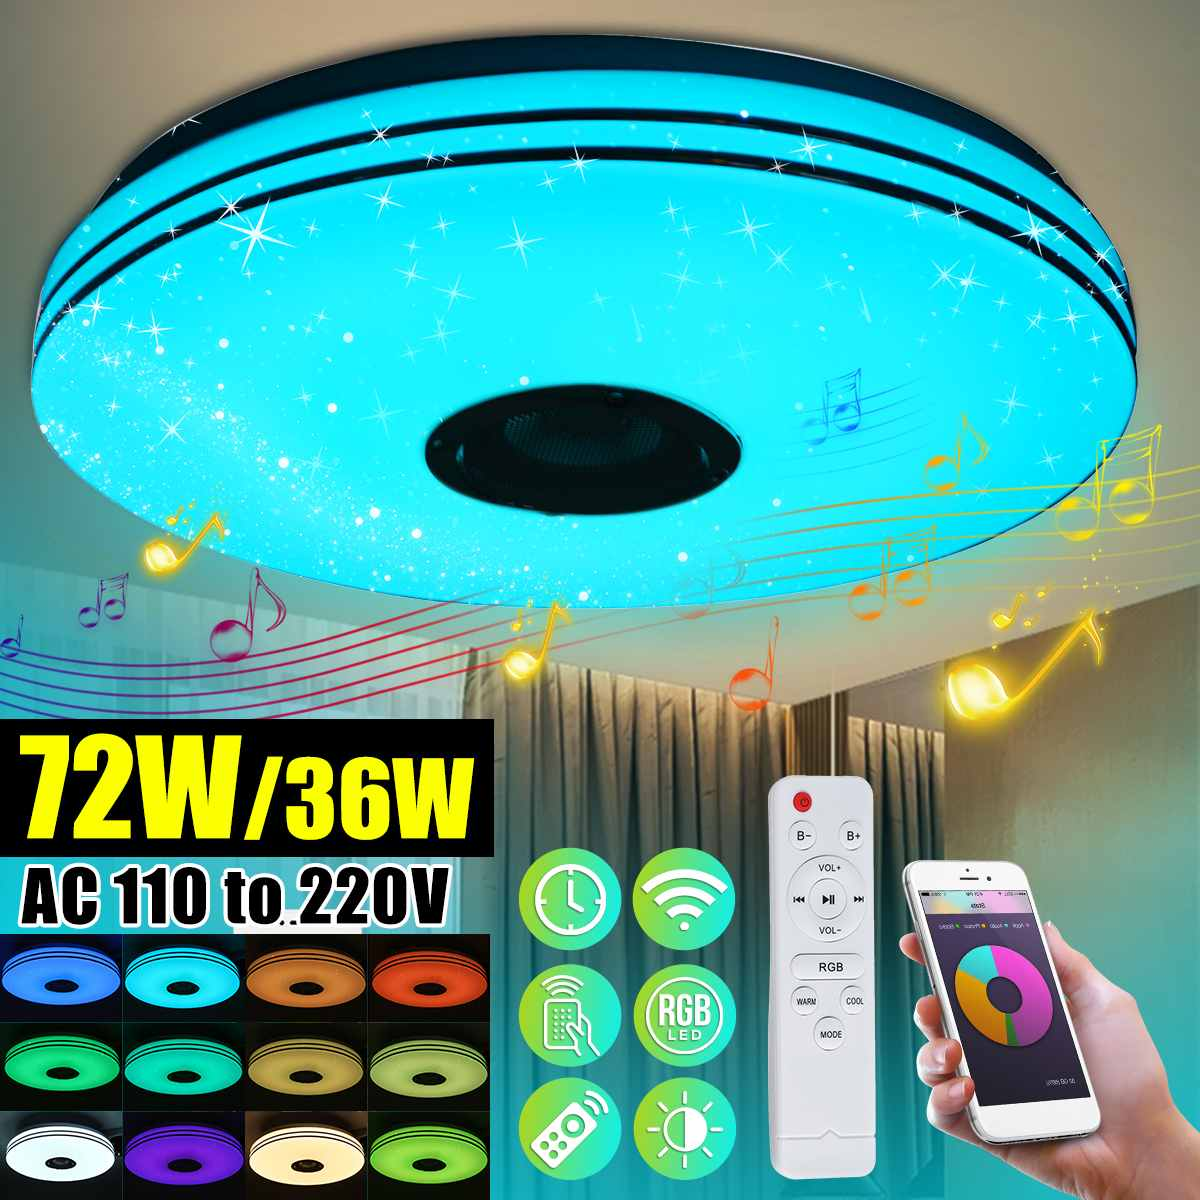 Modern LED Ceiling Lights Dimmable RGB Music Bluetooth Lamp For Livingroom 36/72W APP Control Remote Control 110V/220V